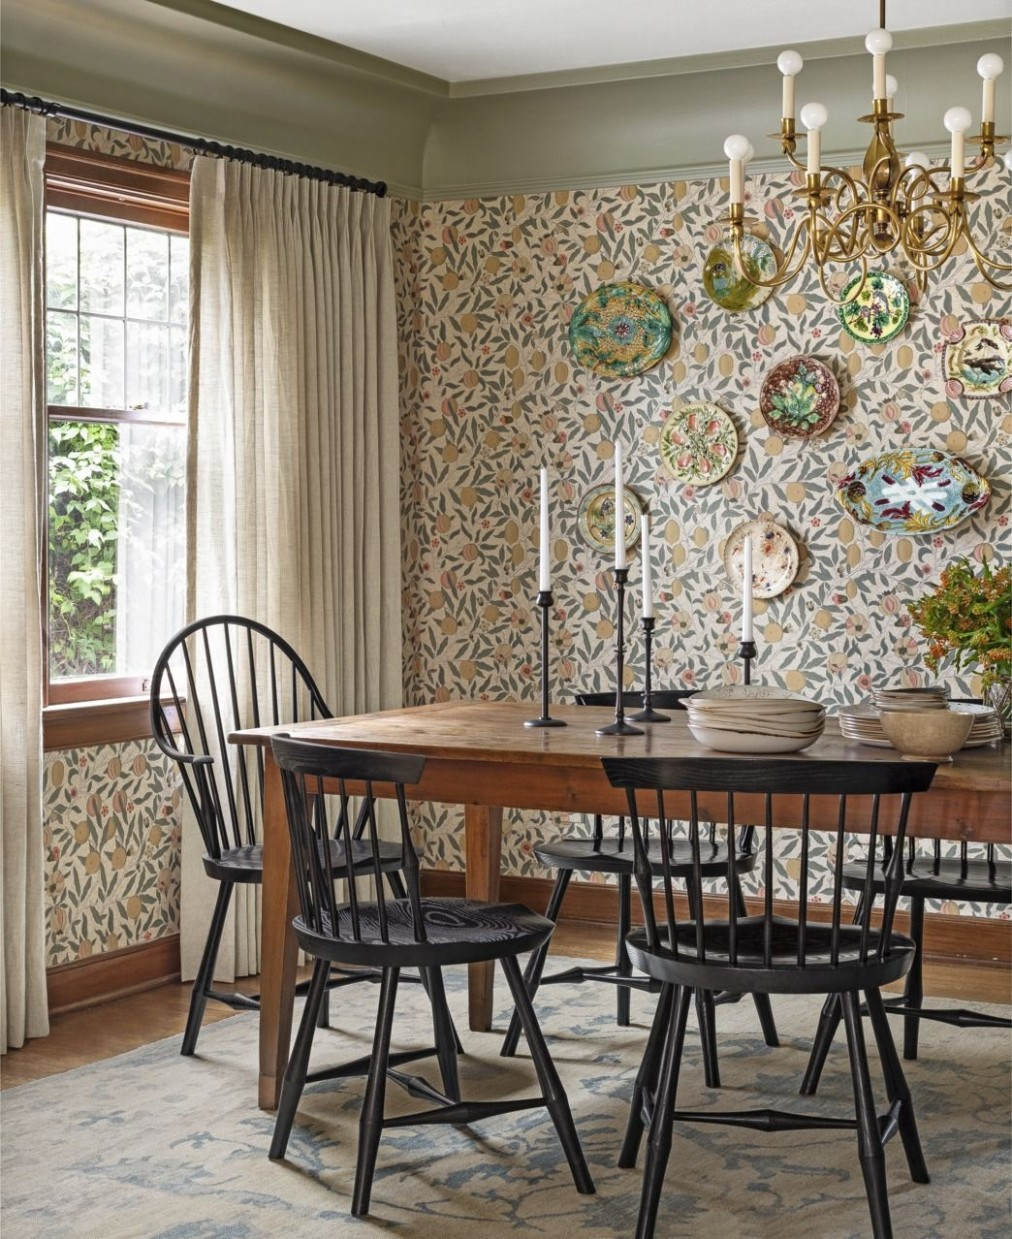 12 Best Dining Room Decorating Ideas - Country Dining Room Decor - Small Dining Room Ideas Uk